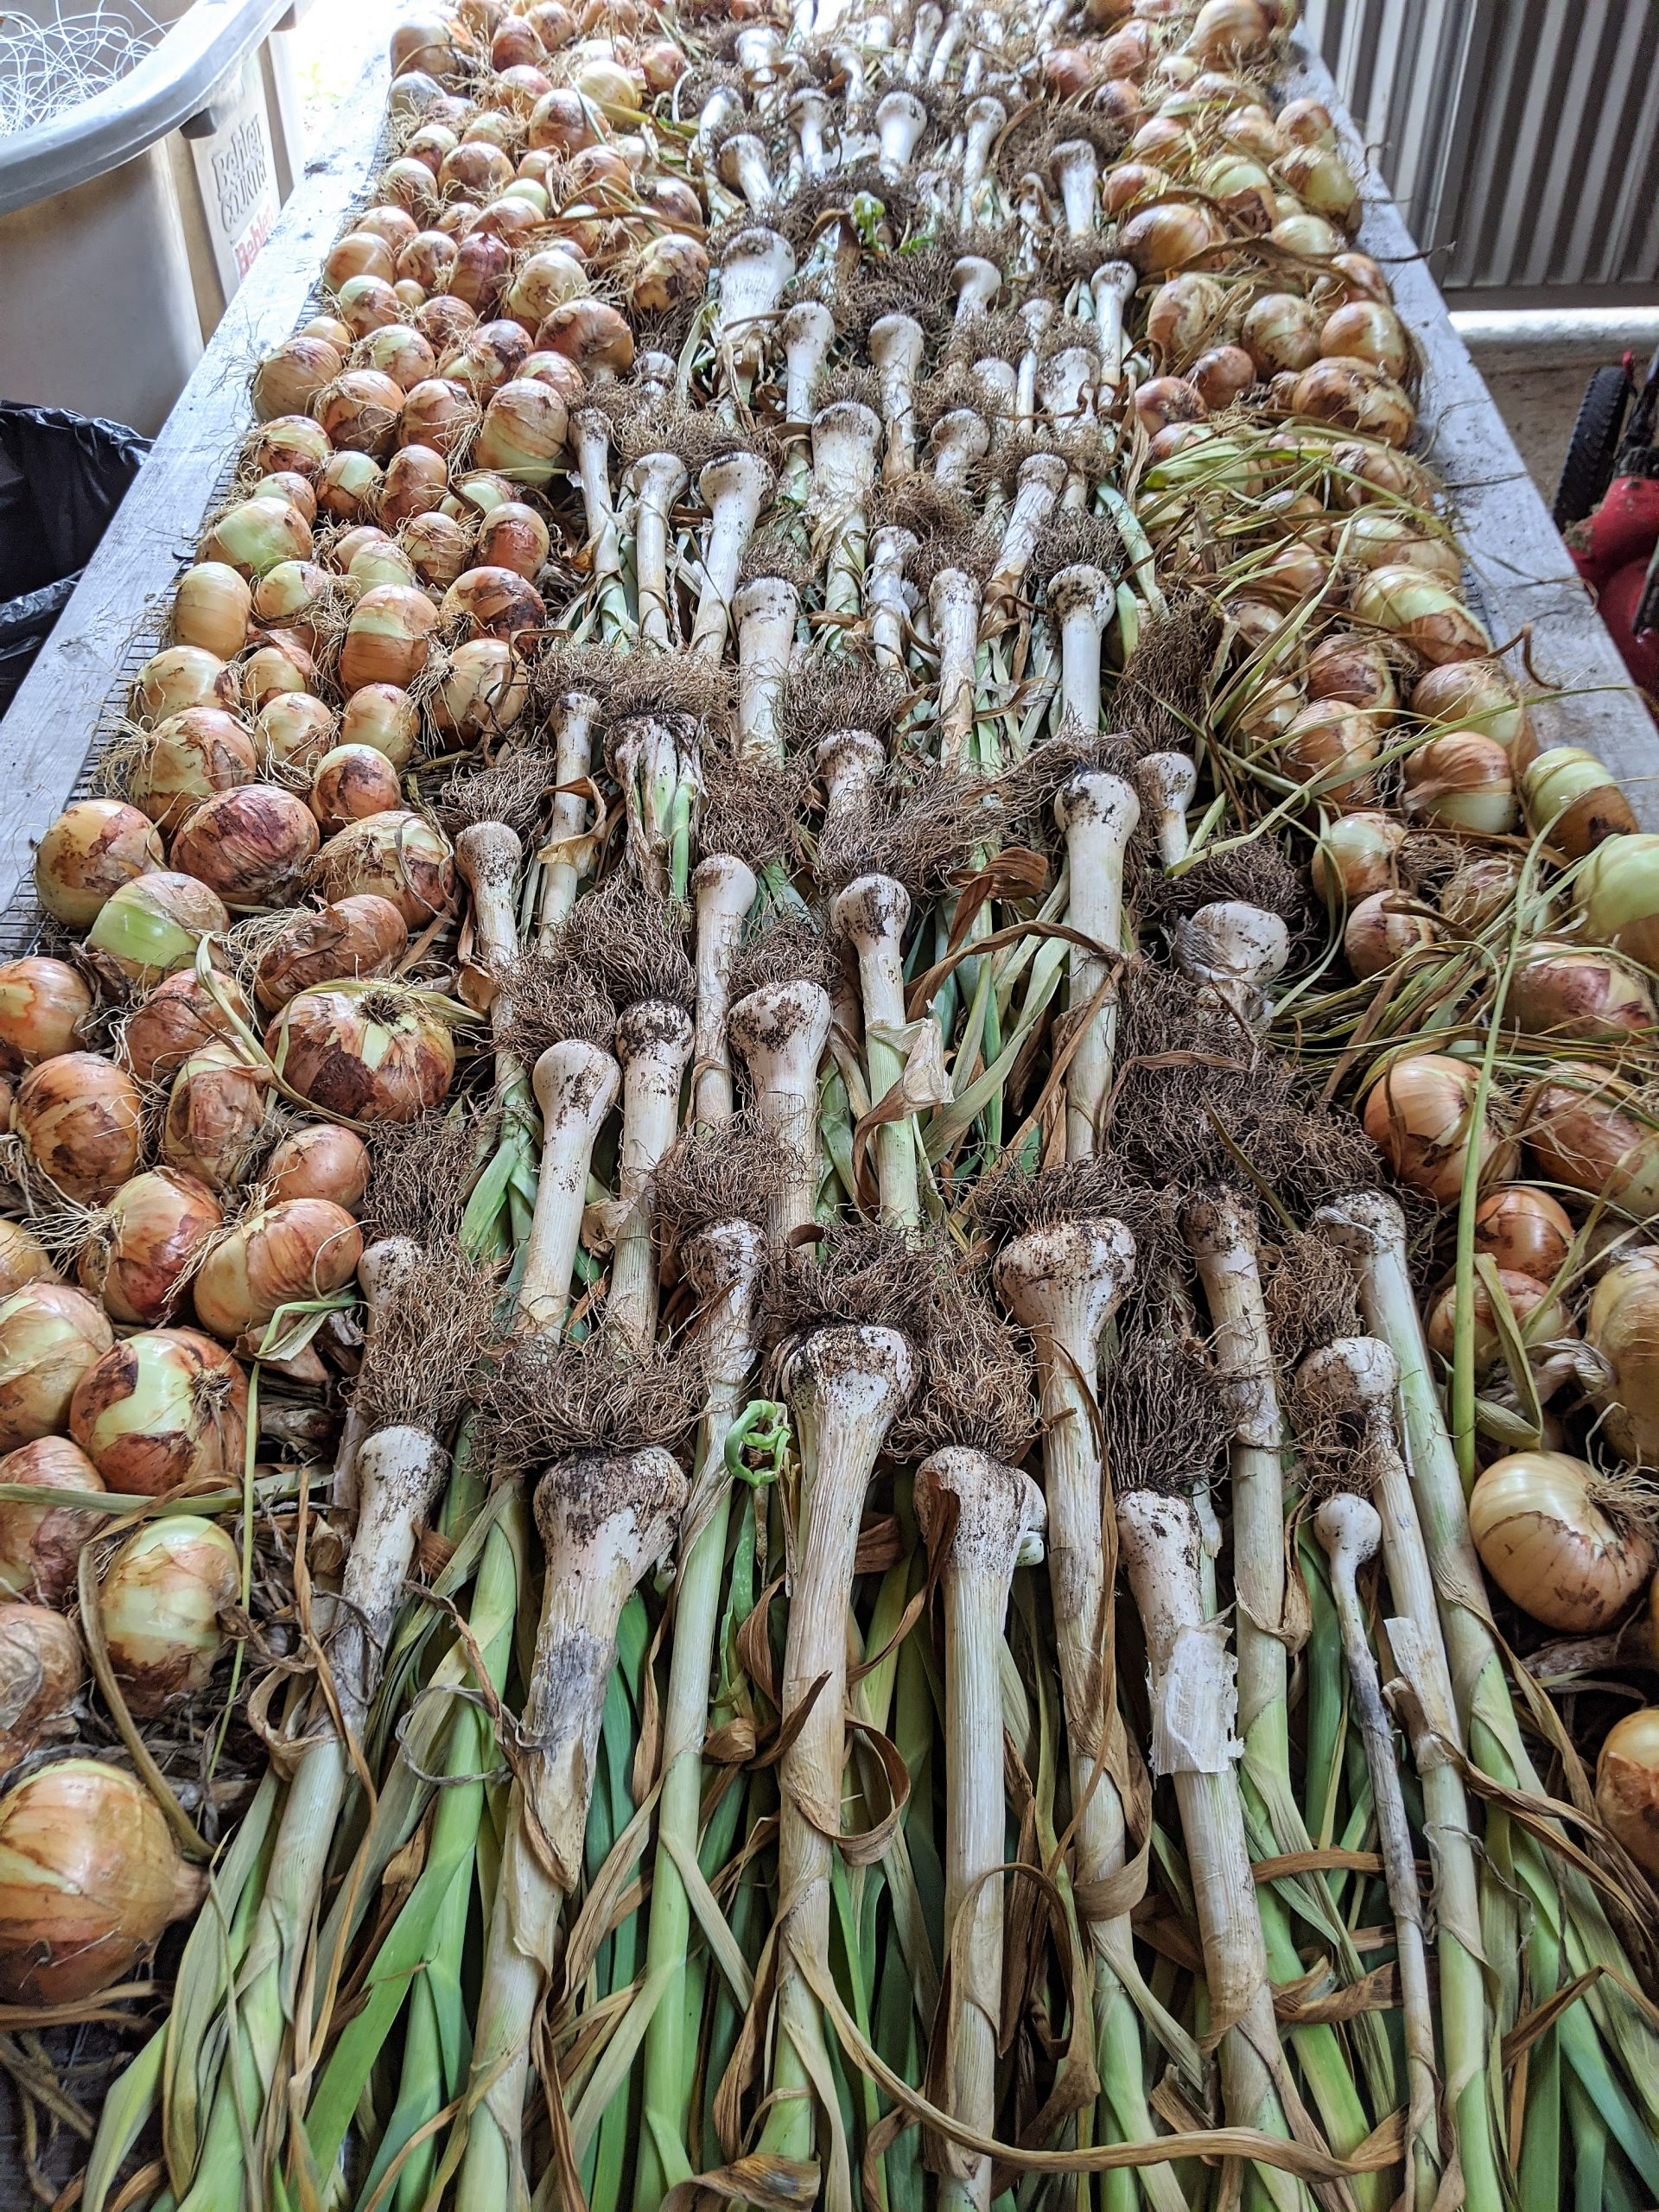 A large table lined with harvested garlic and onions to be cured